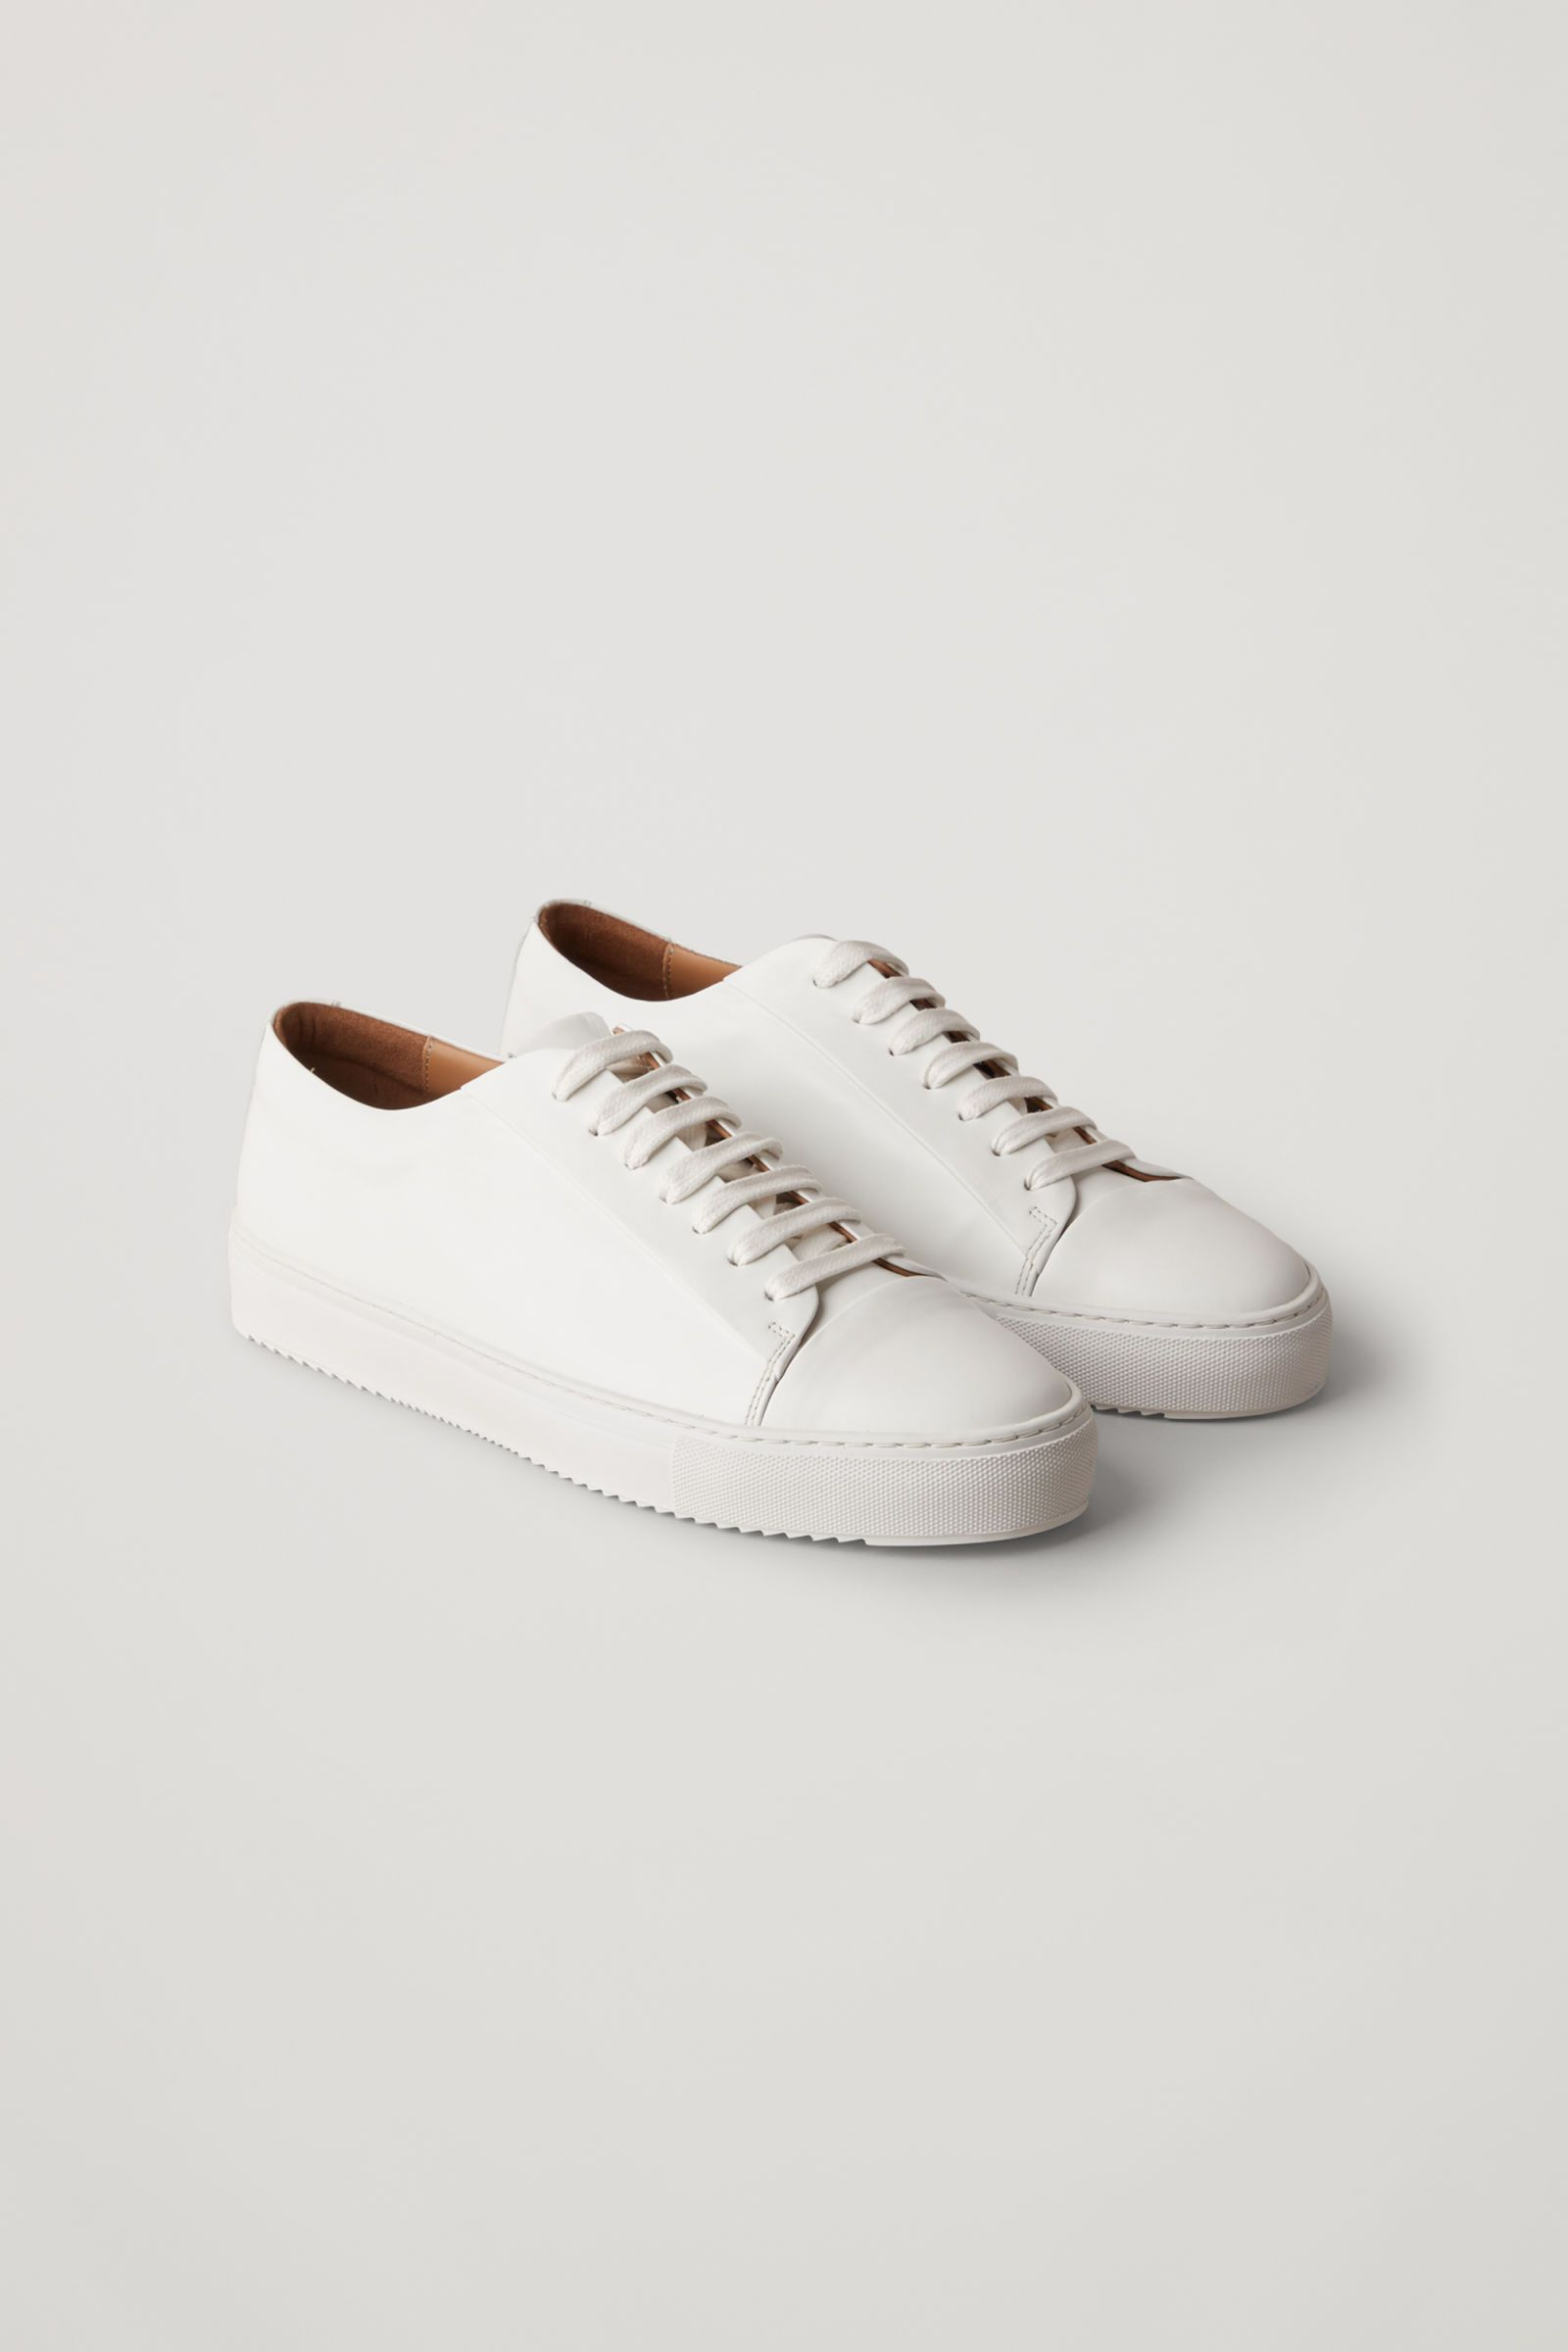 THICK-SOLED LEATHER SNEAKERS in 2020